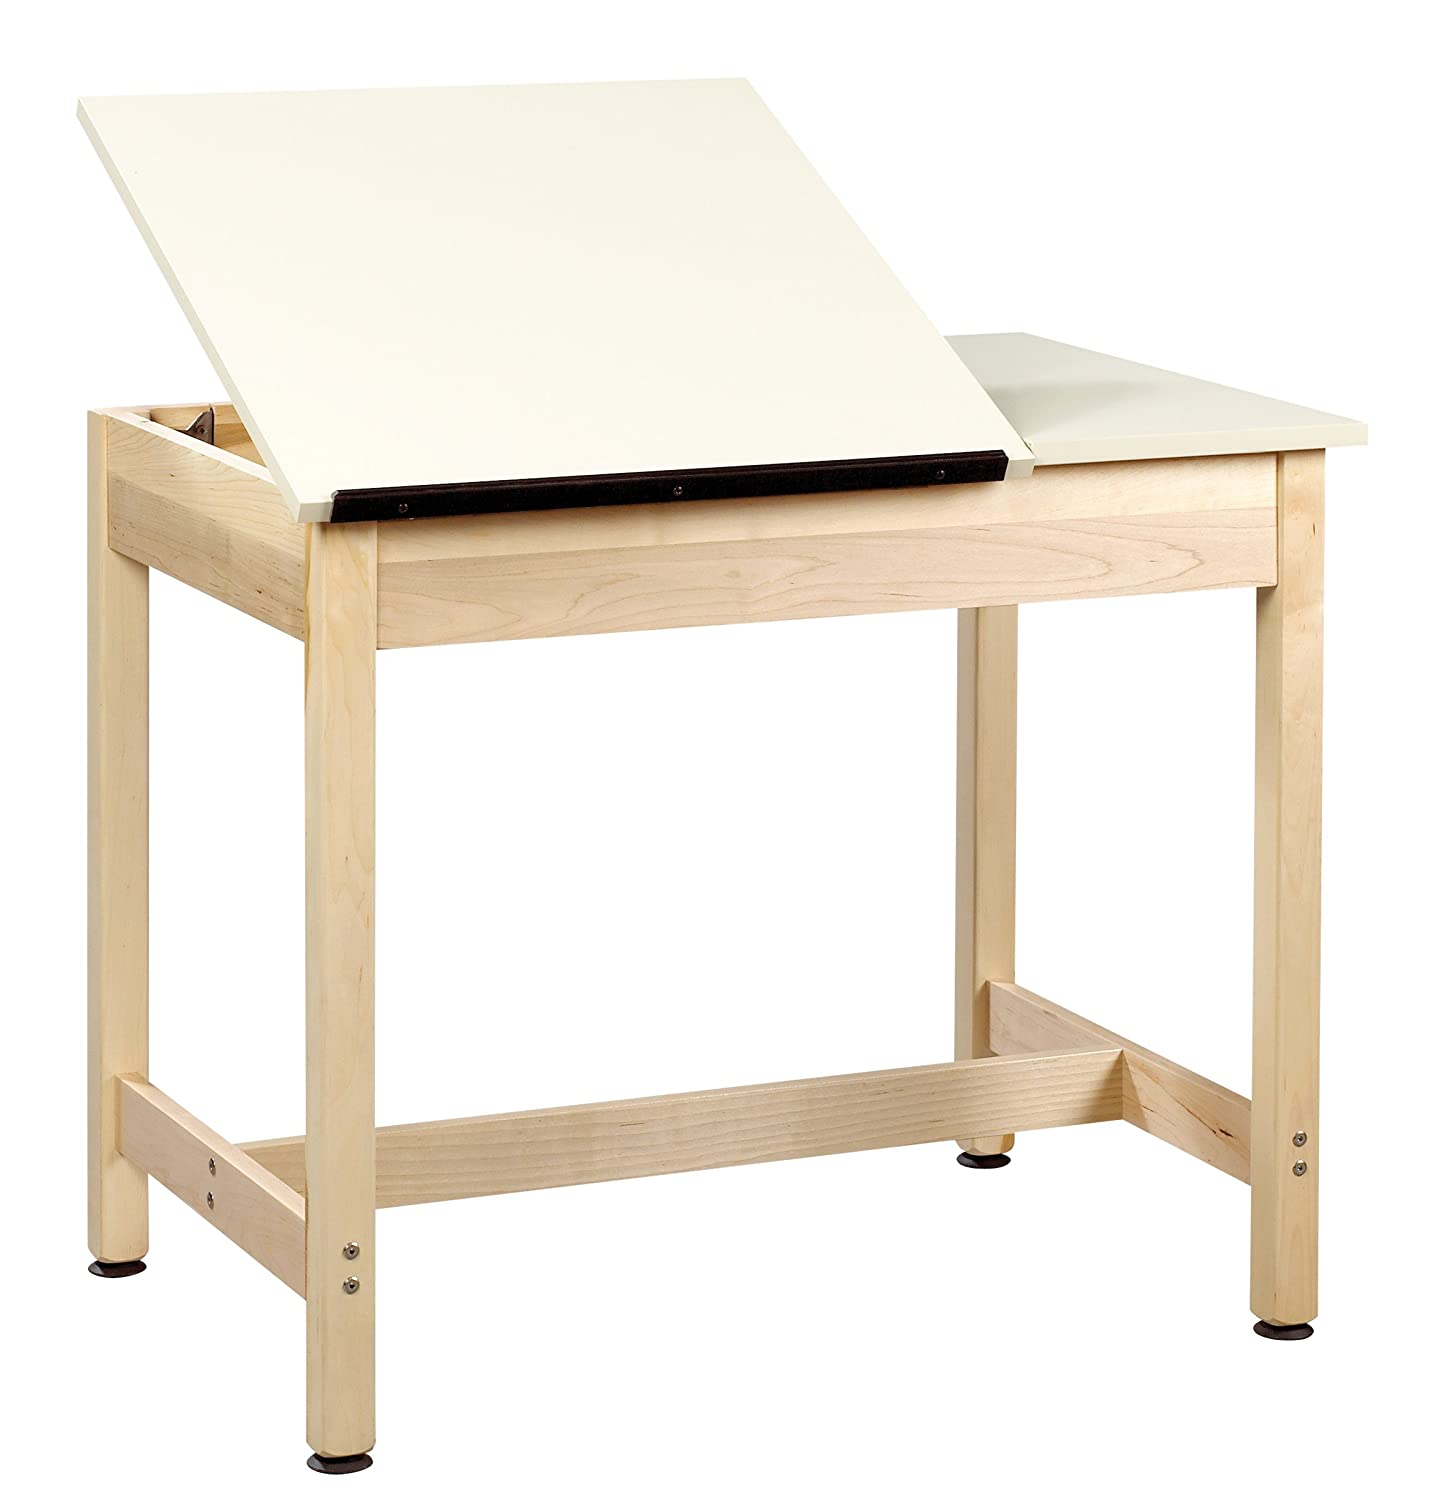 Diversified Woodcrafts DT-9SA30 UV Finish Solid Maple Wood Art-Drafting Table with 1 Piece Top - Plastic Laminate